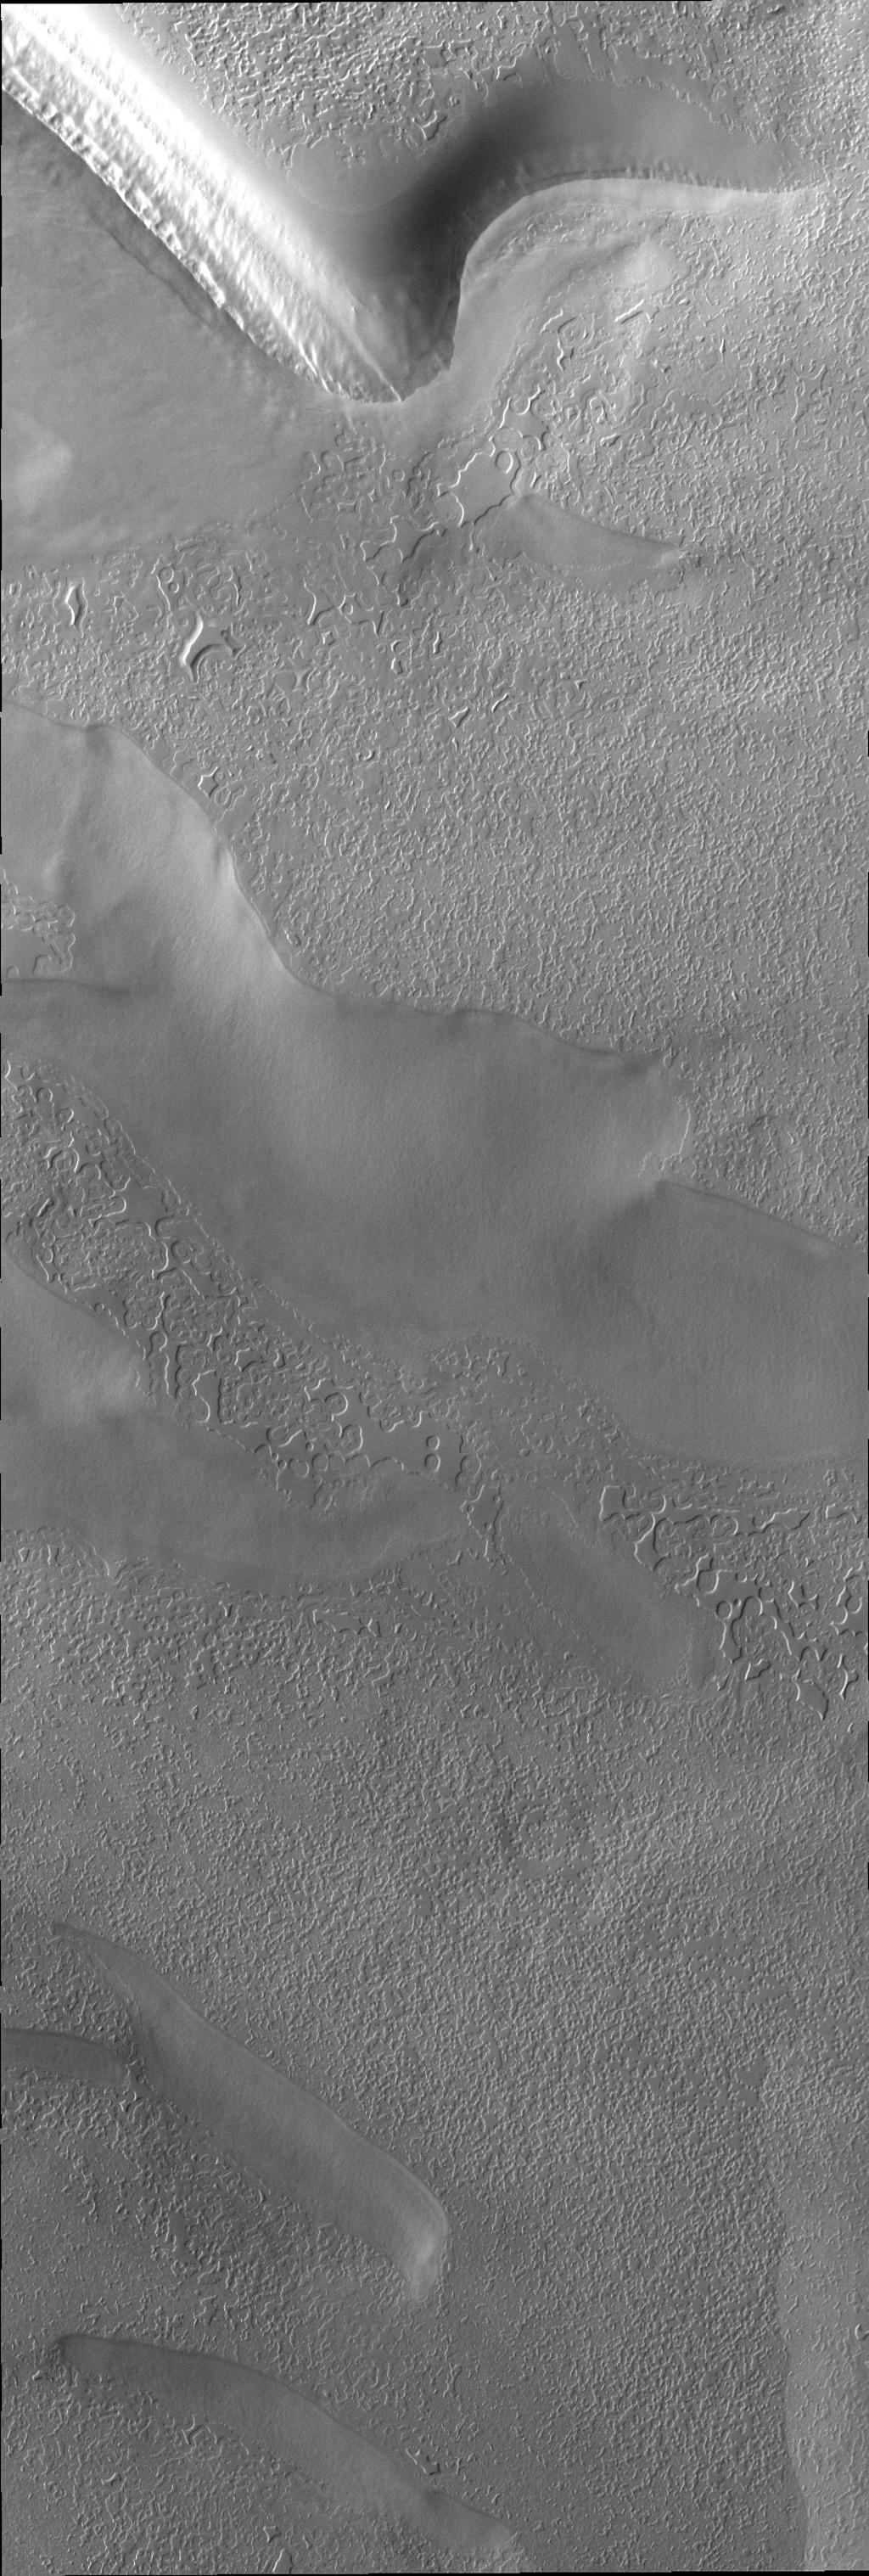 Surface textures vary in relation to topography on the south polar cap. Trough sides and floors are different from the flat top surface of the cap. This image was captured by NASA's Mars Odyssey.